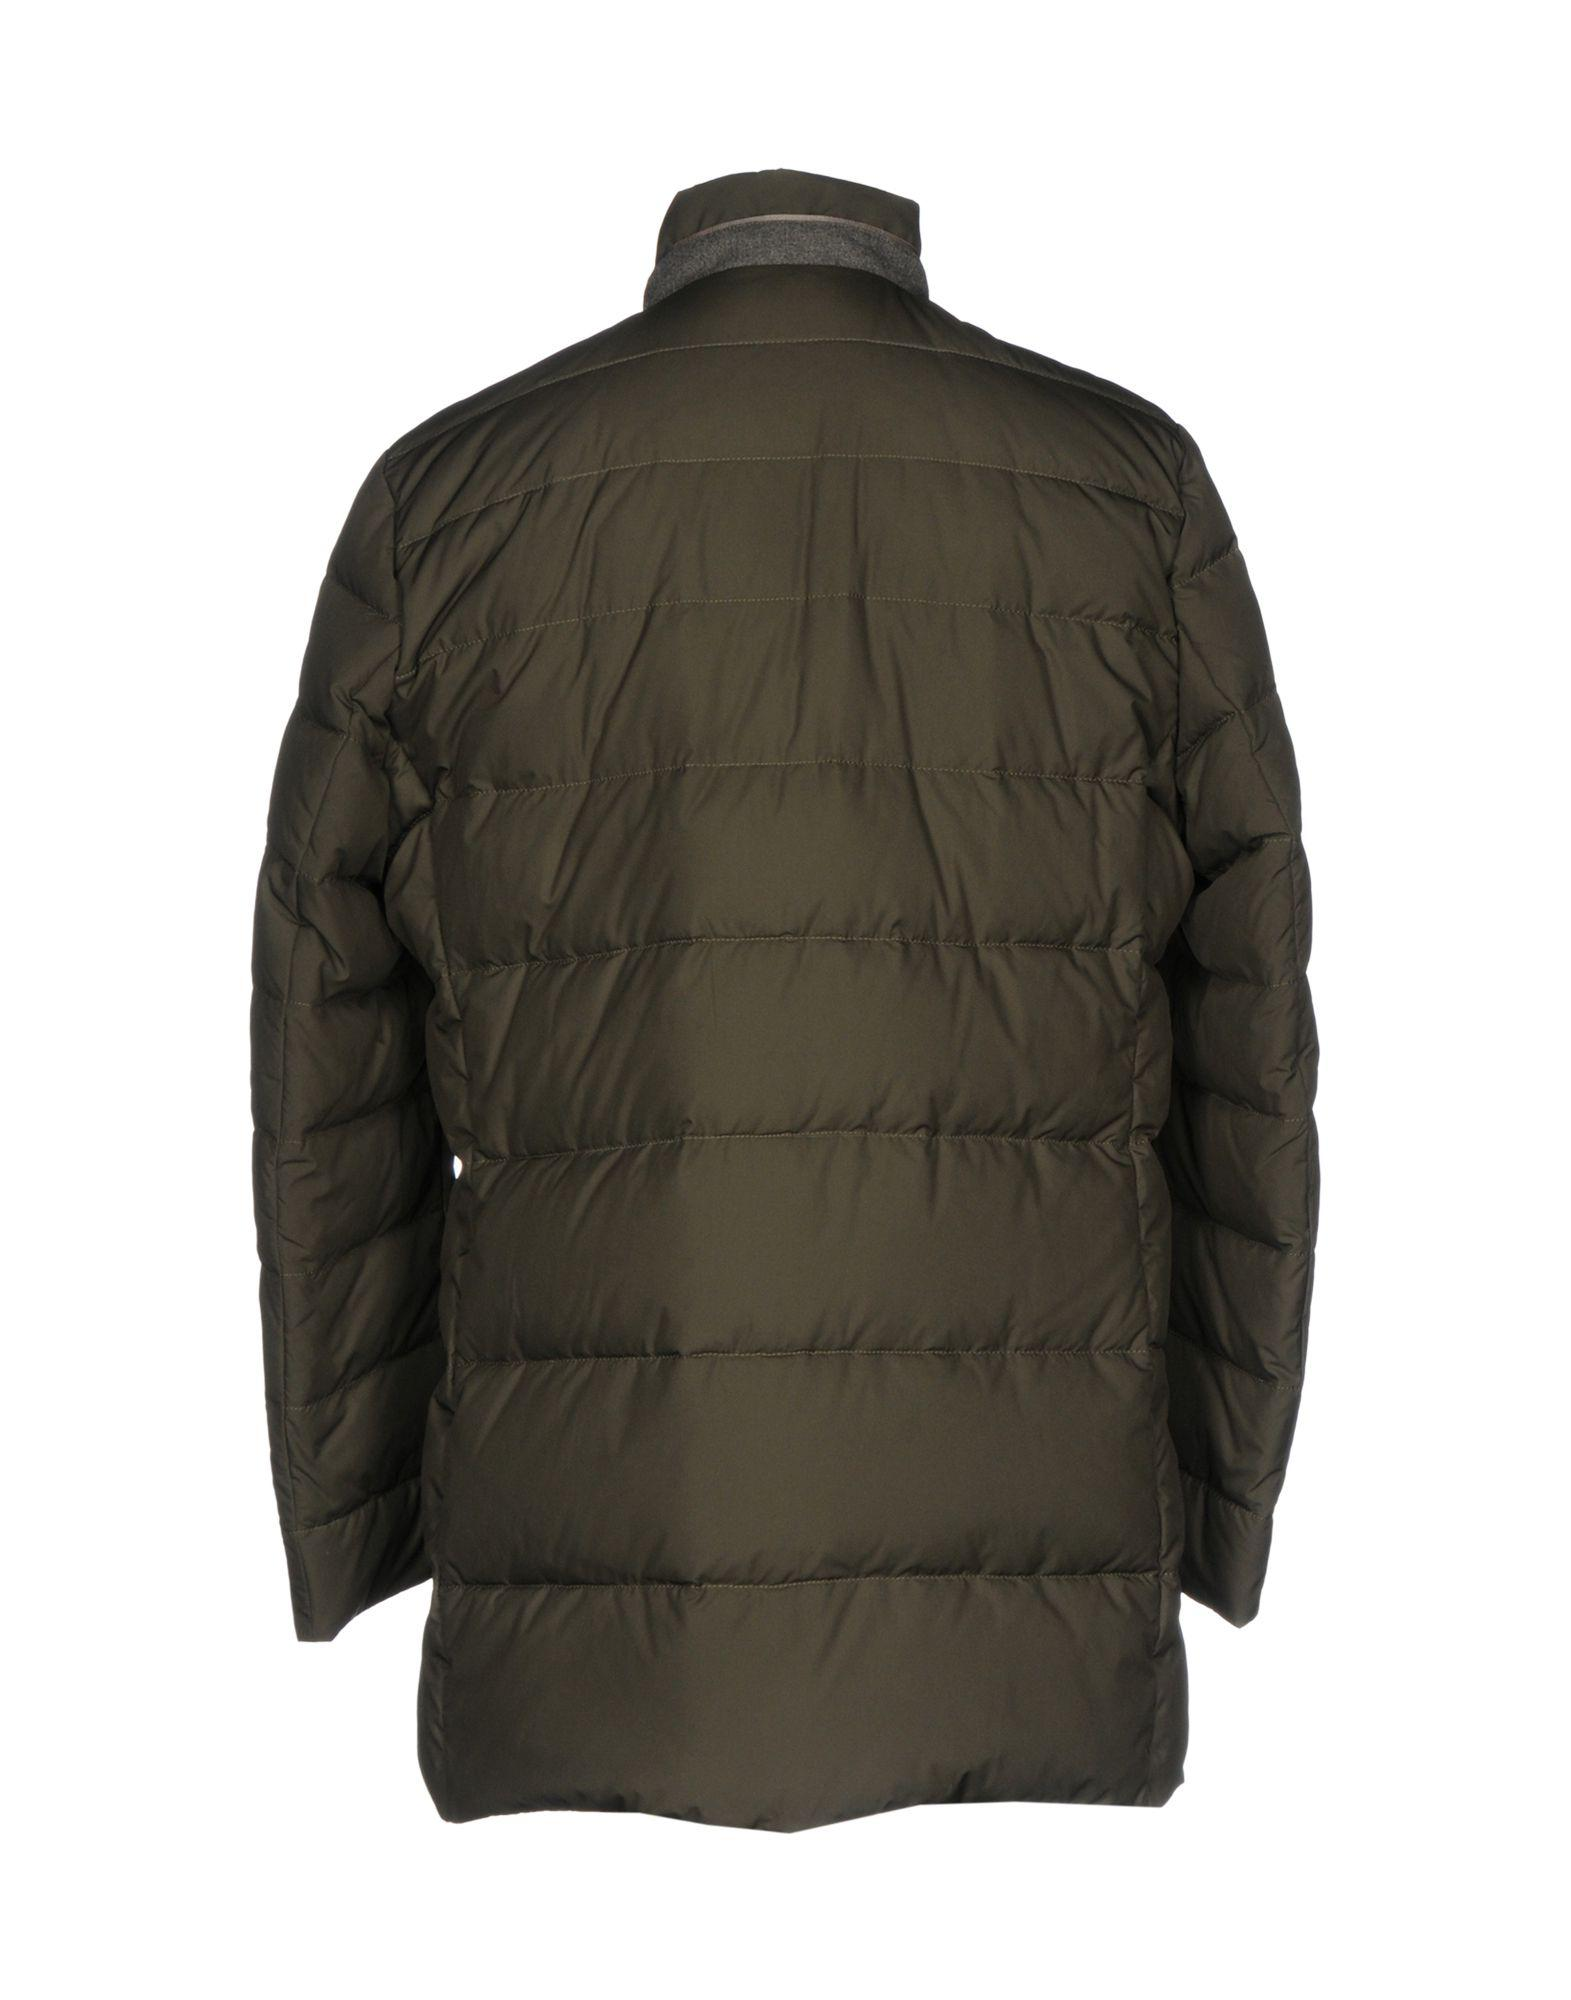 Schneiders Goose Down Jacket in Military Green (Green) for Men